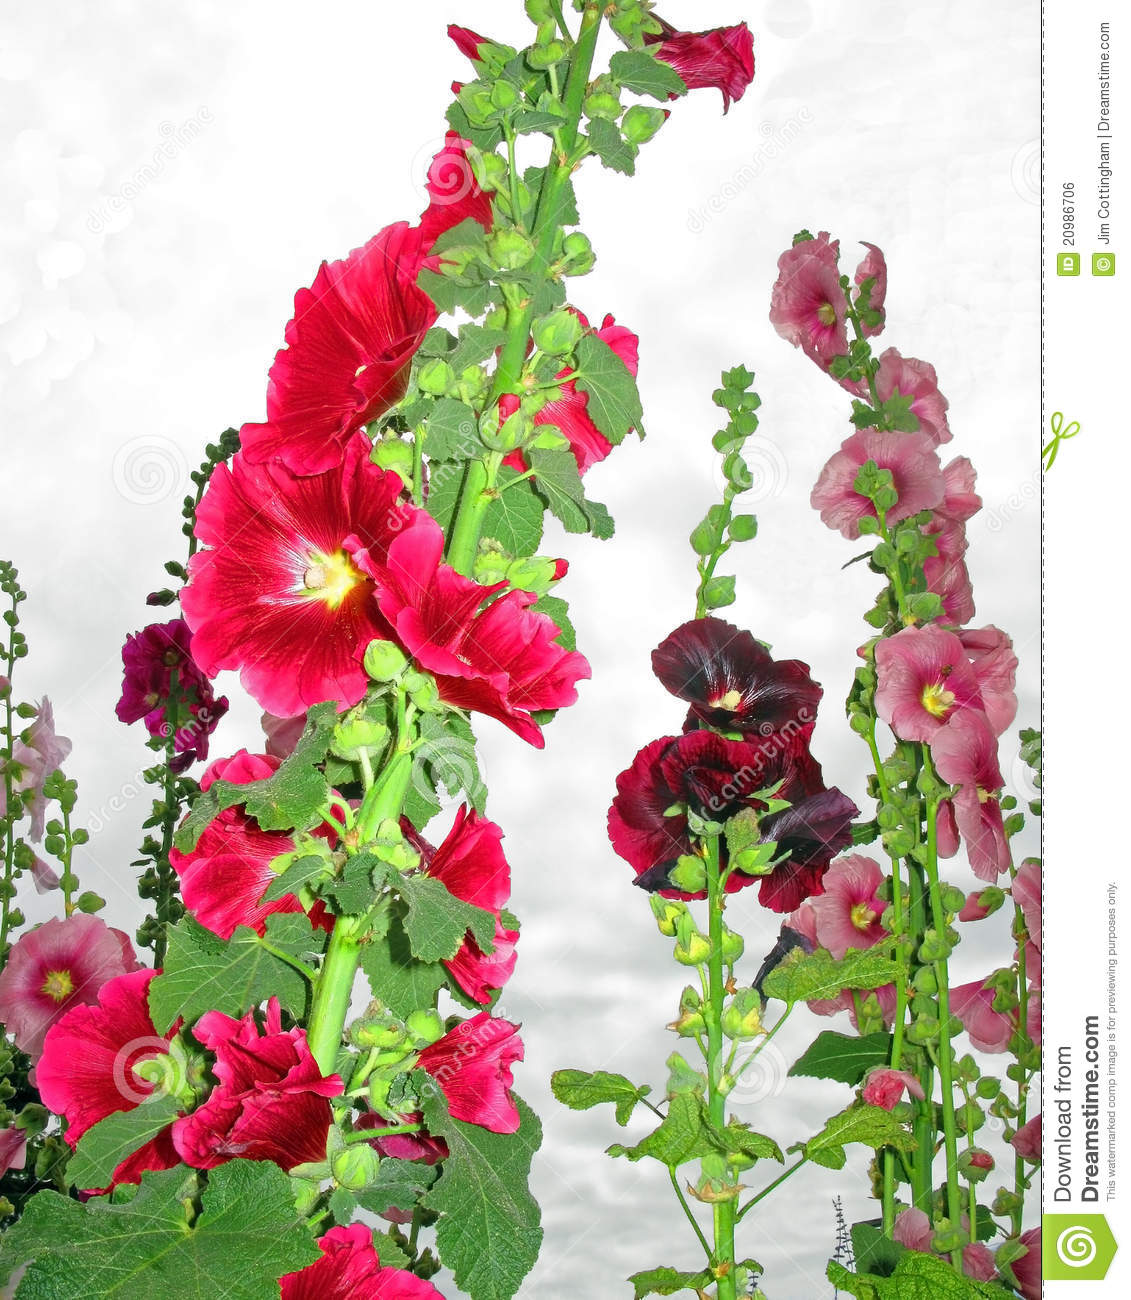 Hollyhocks clipart #11, Download drawings